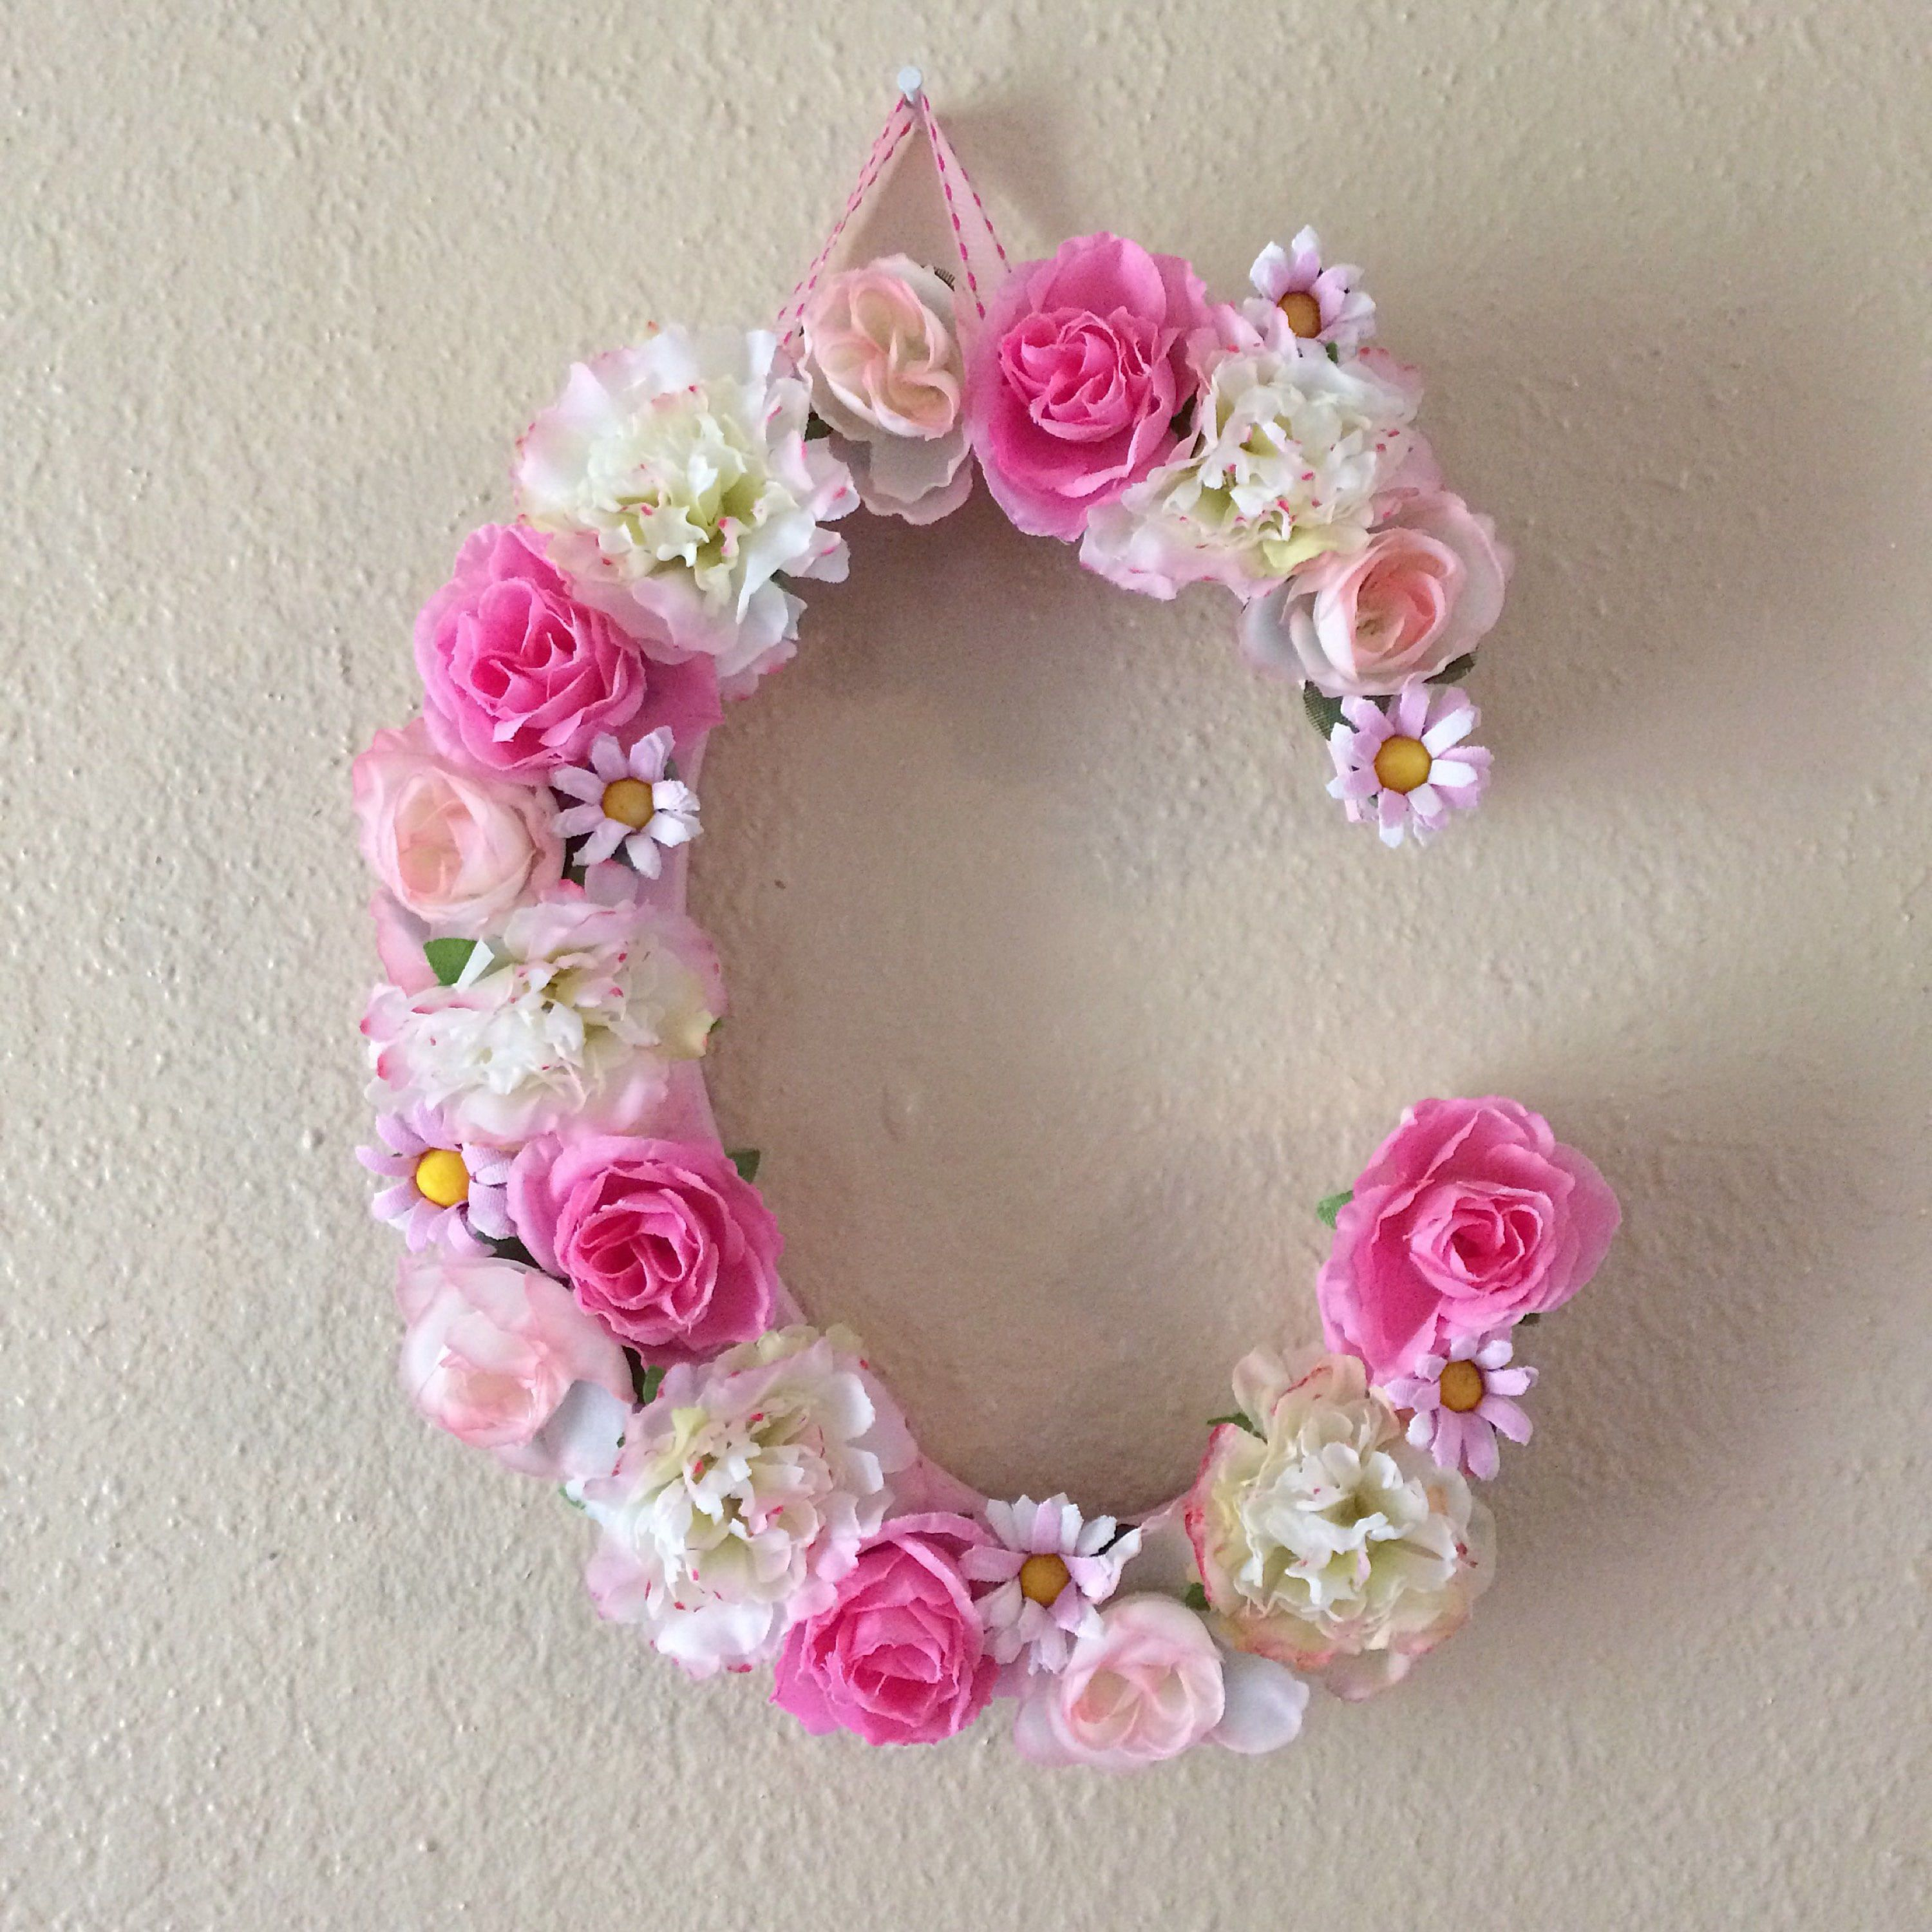 rose in diameter garland door european decor flowers simulation wedding wreath wall dried style item party hanging room artificial christmas